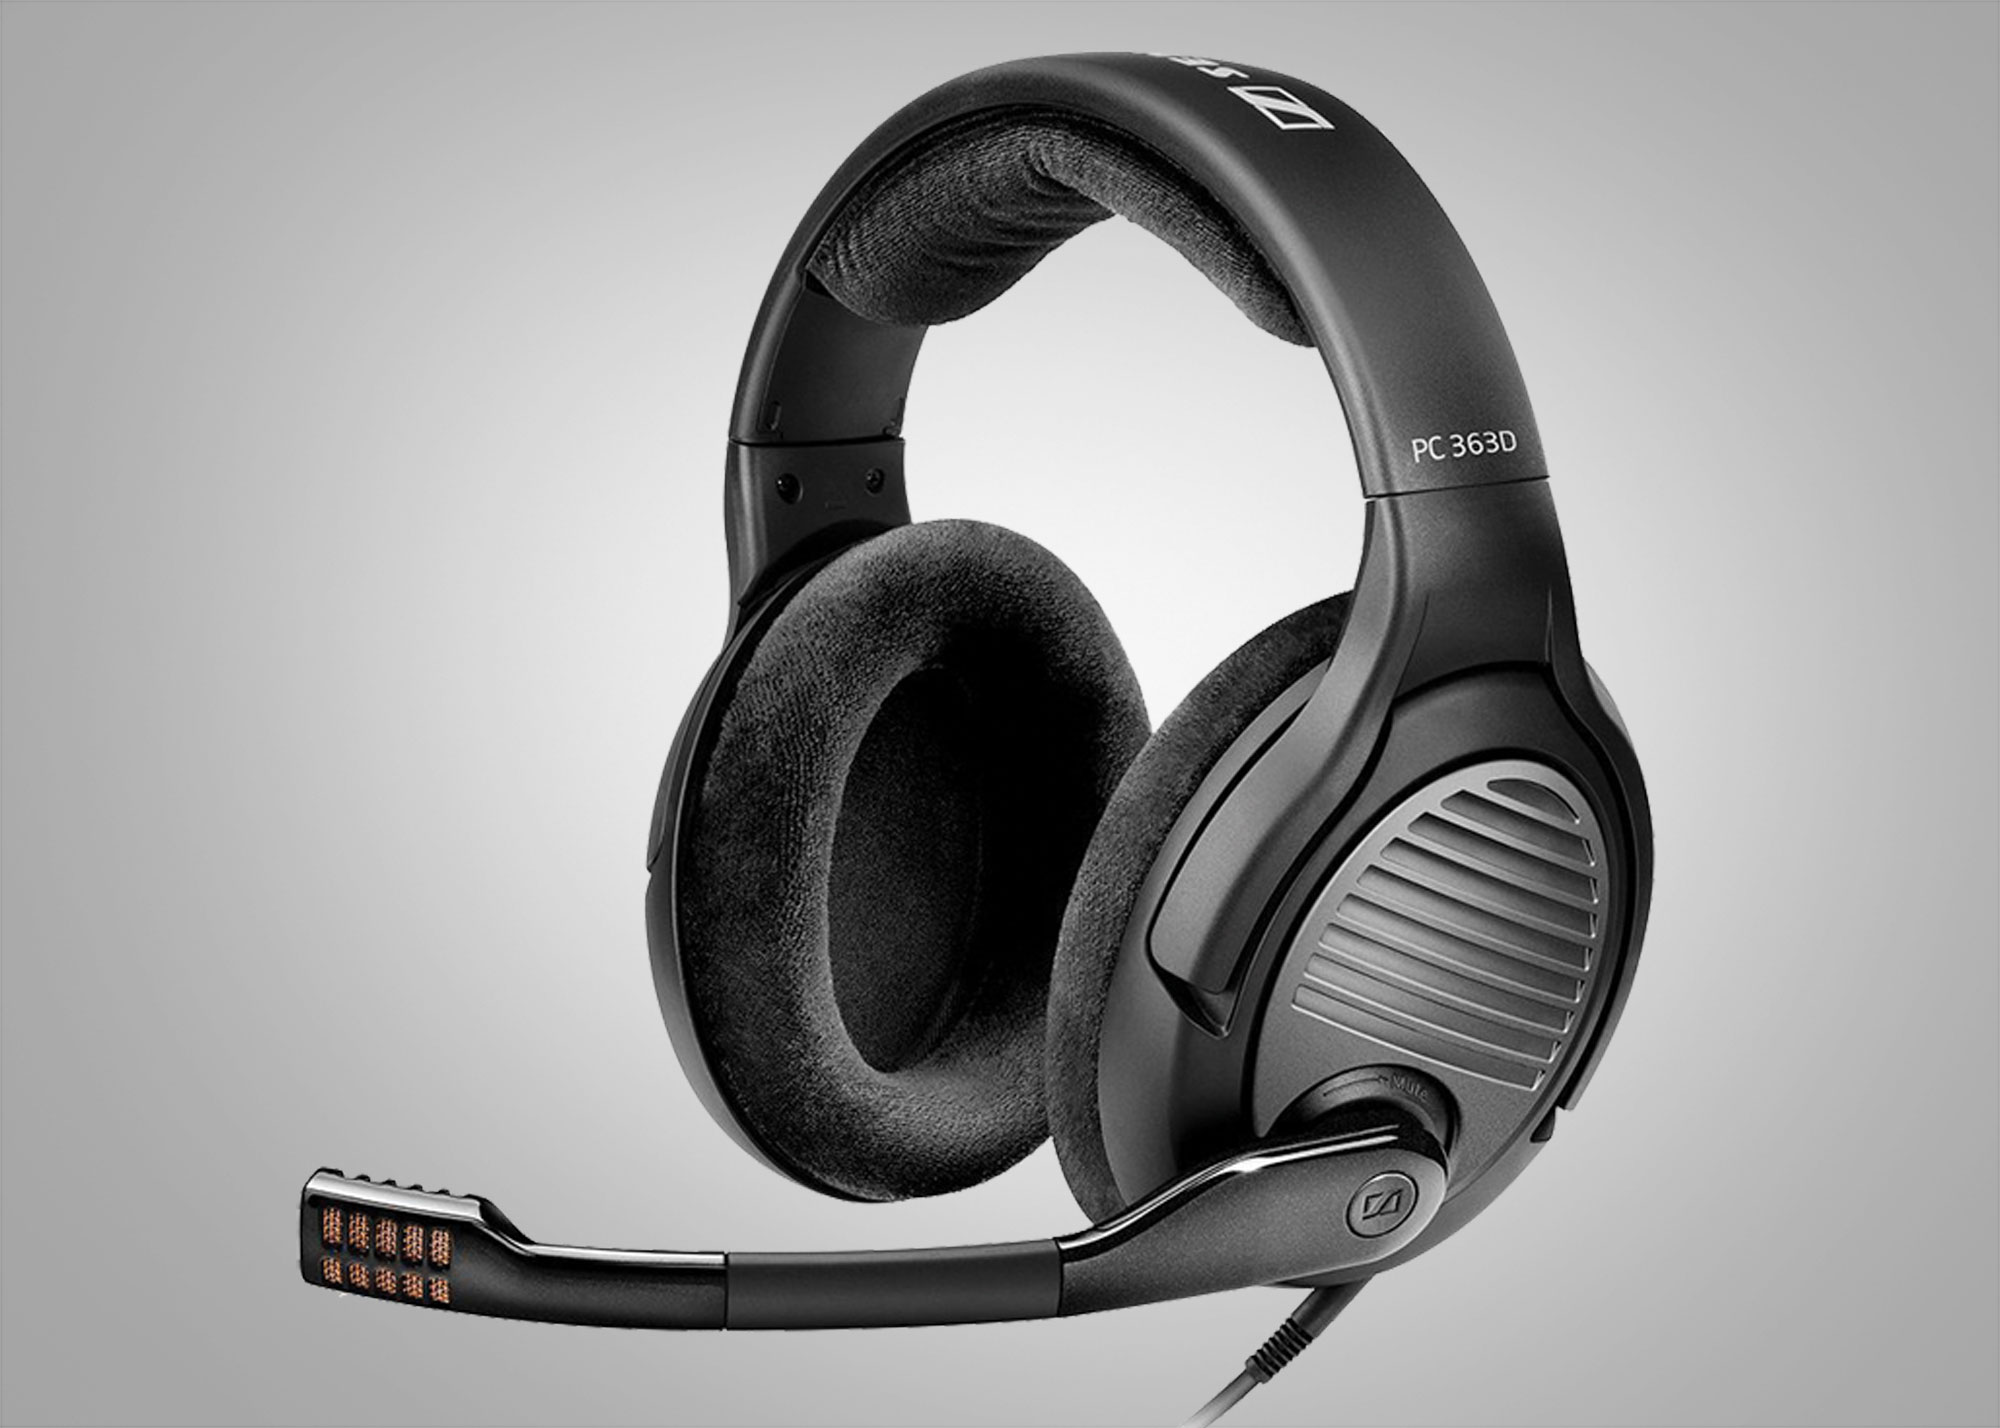 Test: Sennheiser PC363D